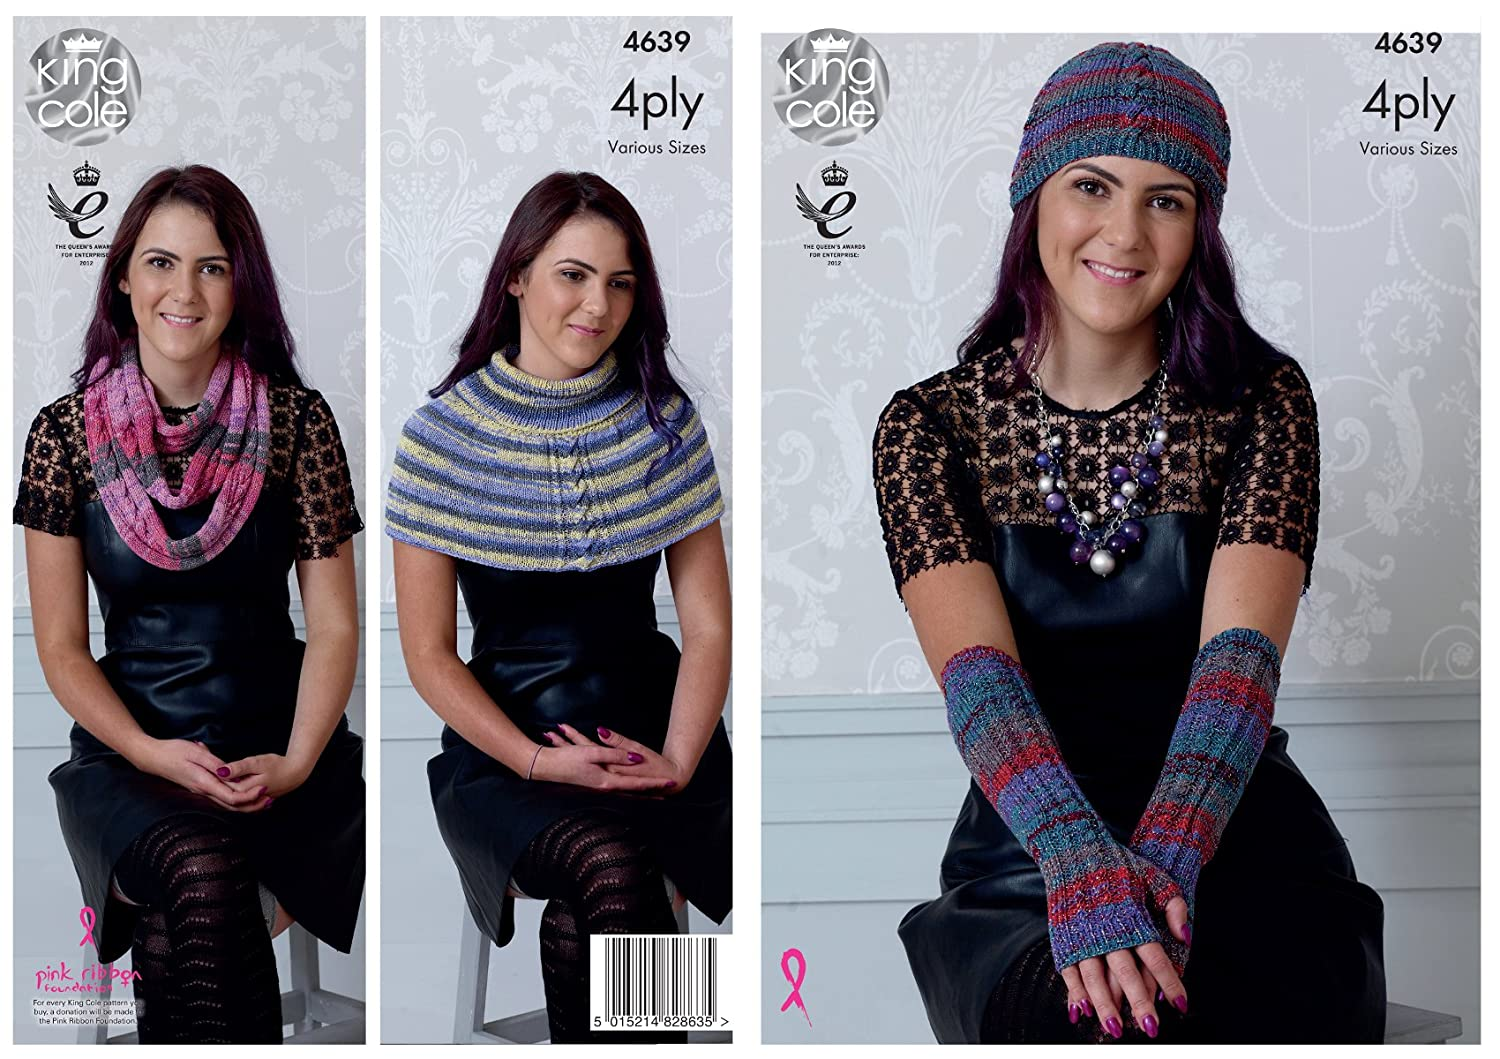 Cowl Neck Knitting Patterns – Keep Warm This Winter